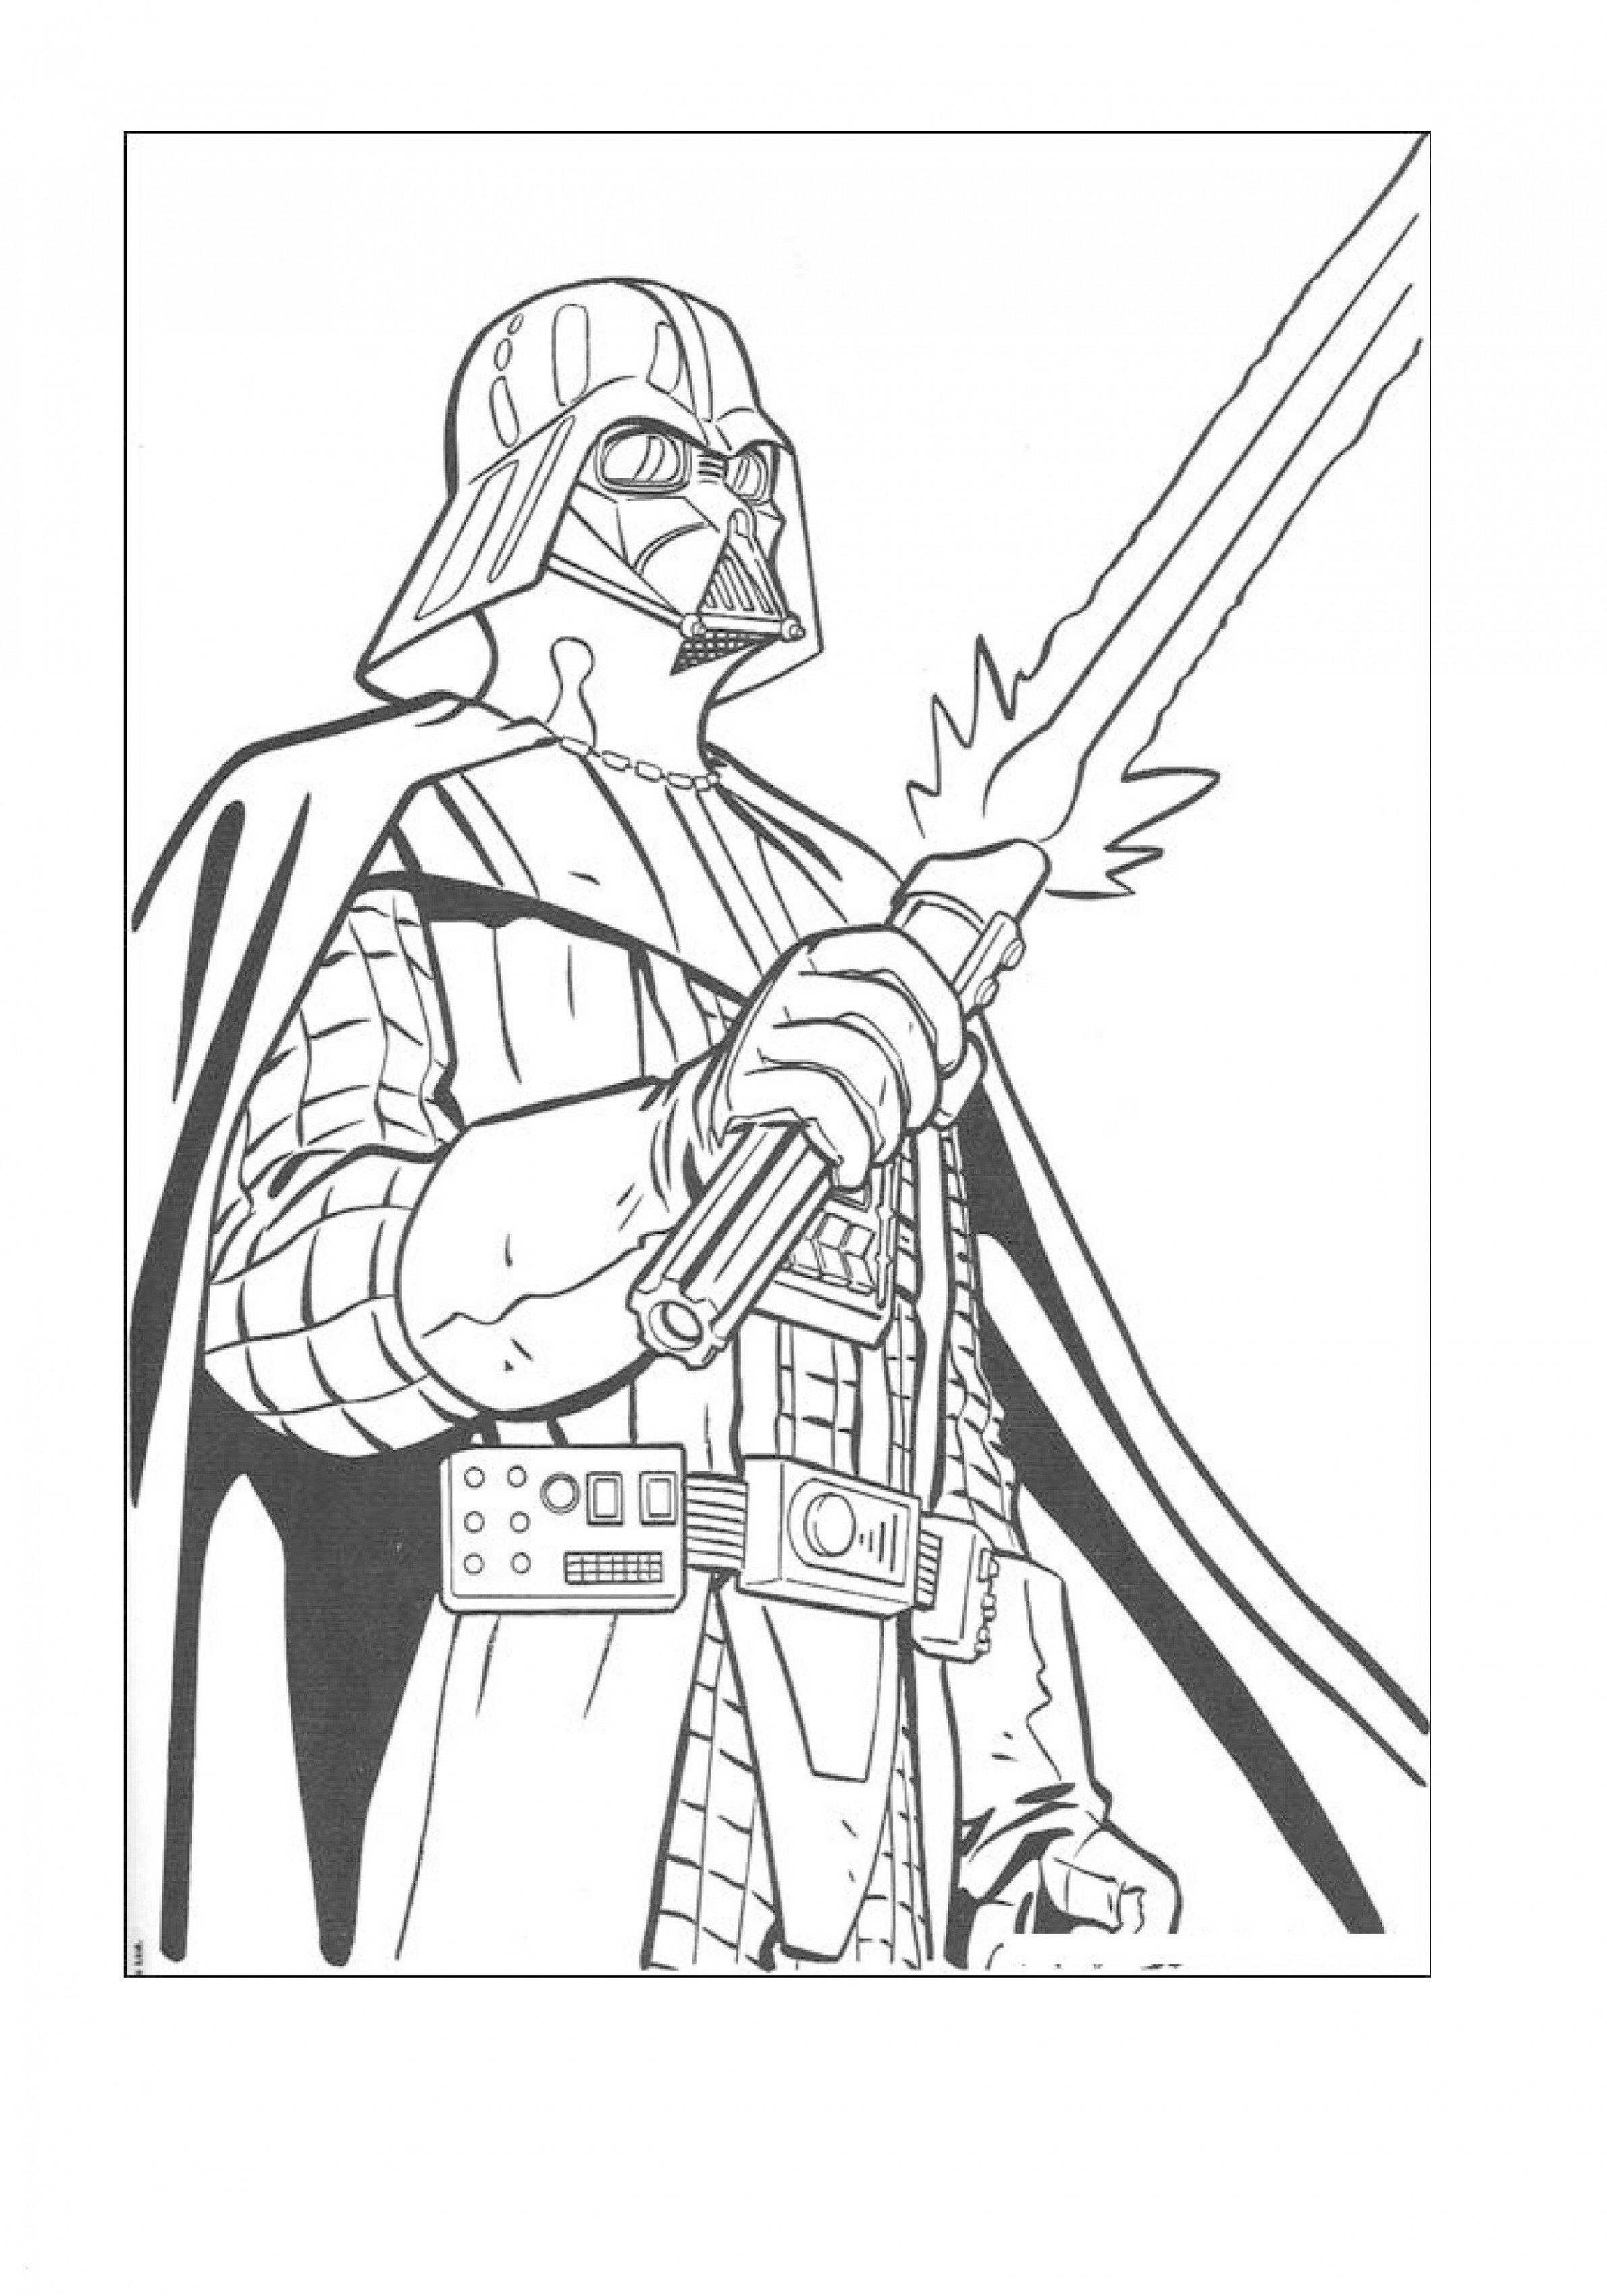 Starwars Coloring Pages Star Wars Coloring Pages Yoda Ausmalbilder Elegant Lego Starwars